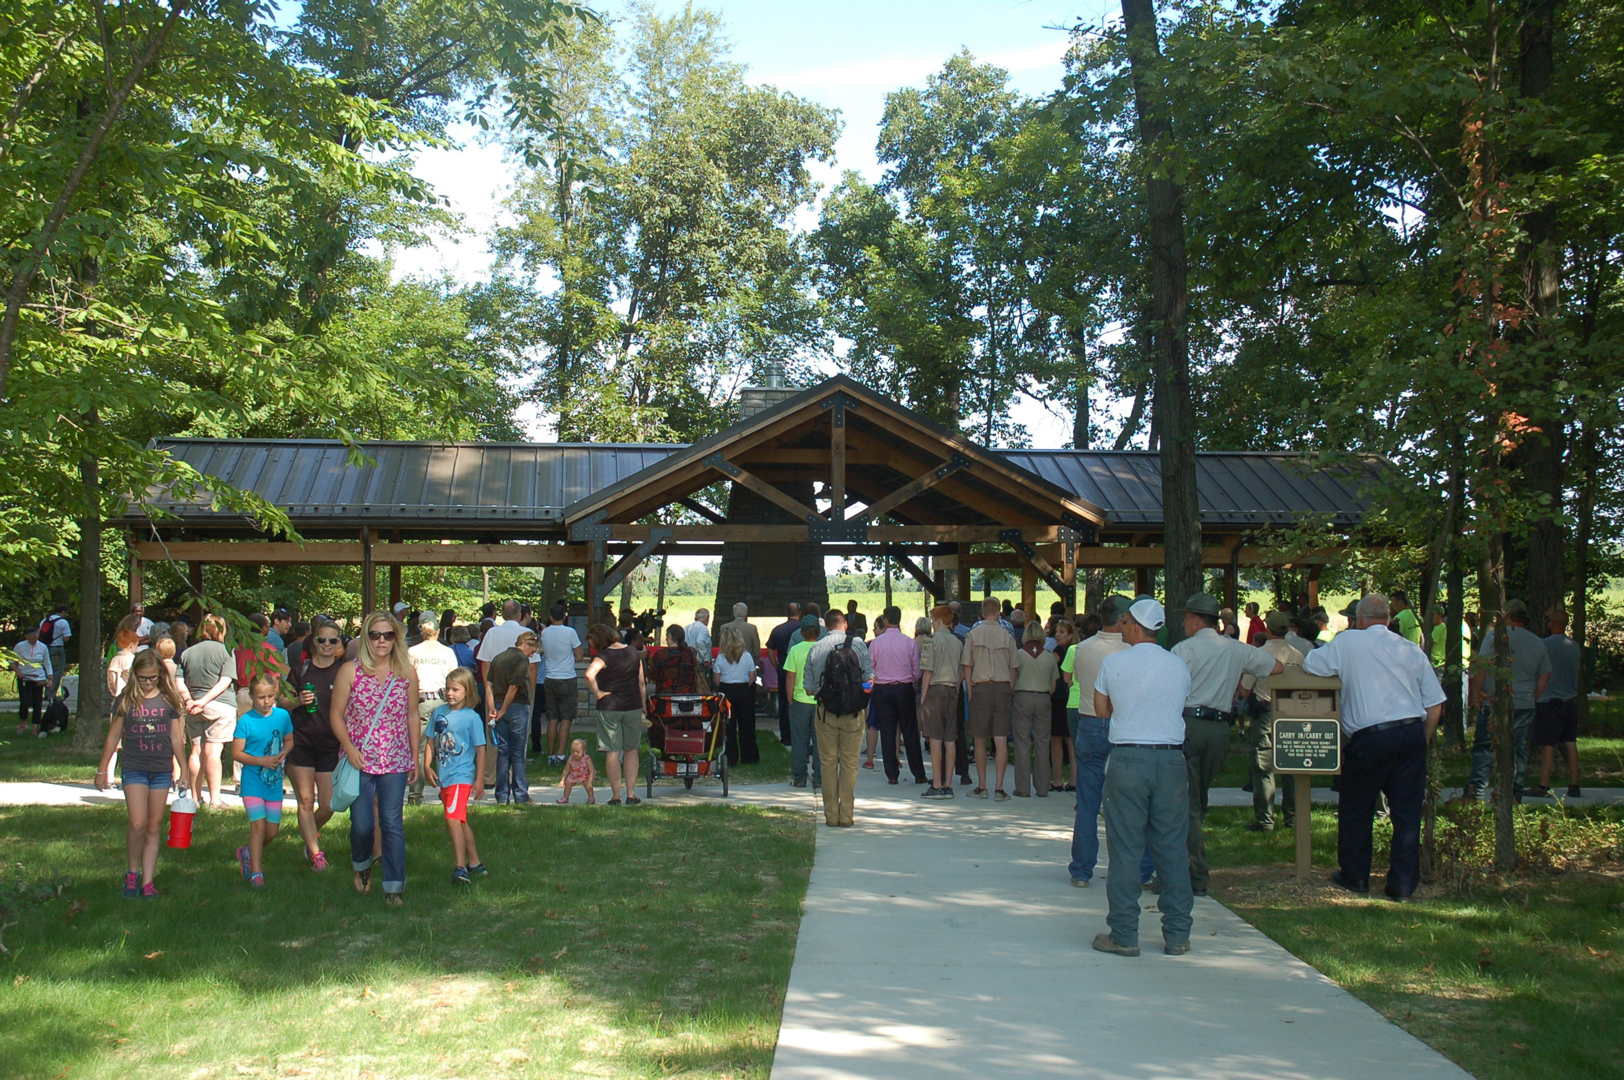 Millstone Picnic Shelter at park opening